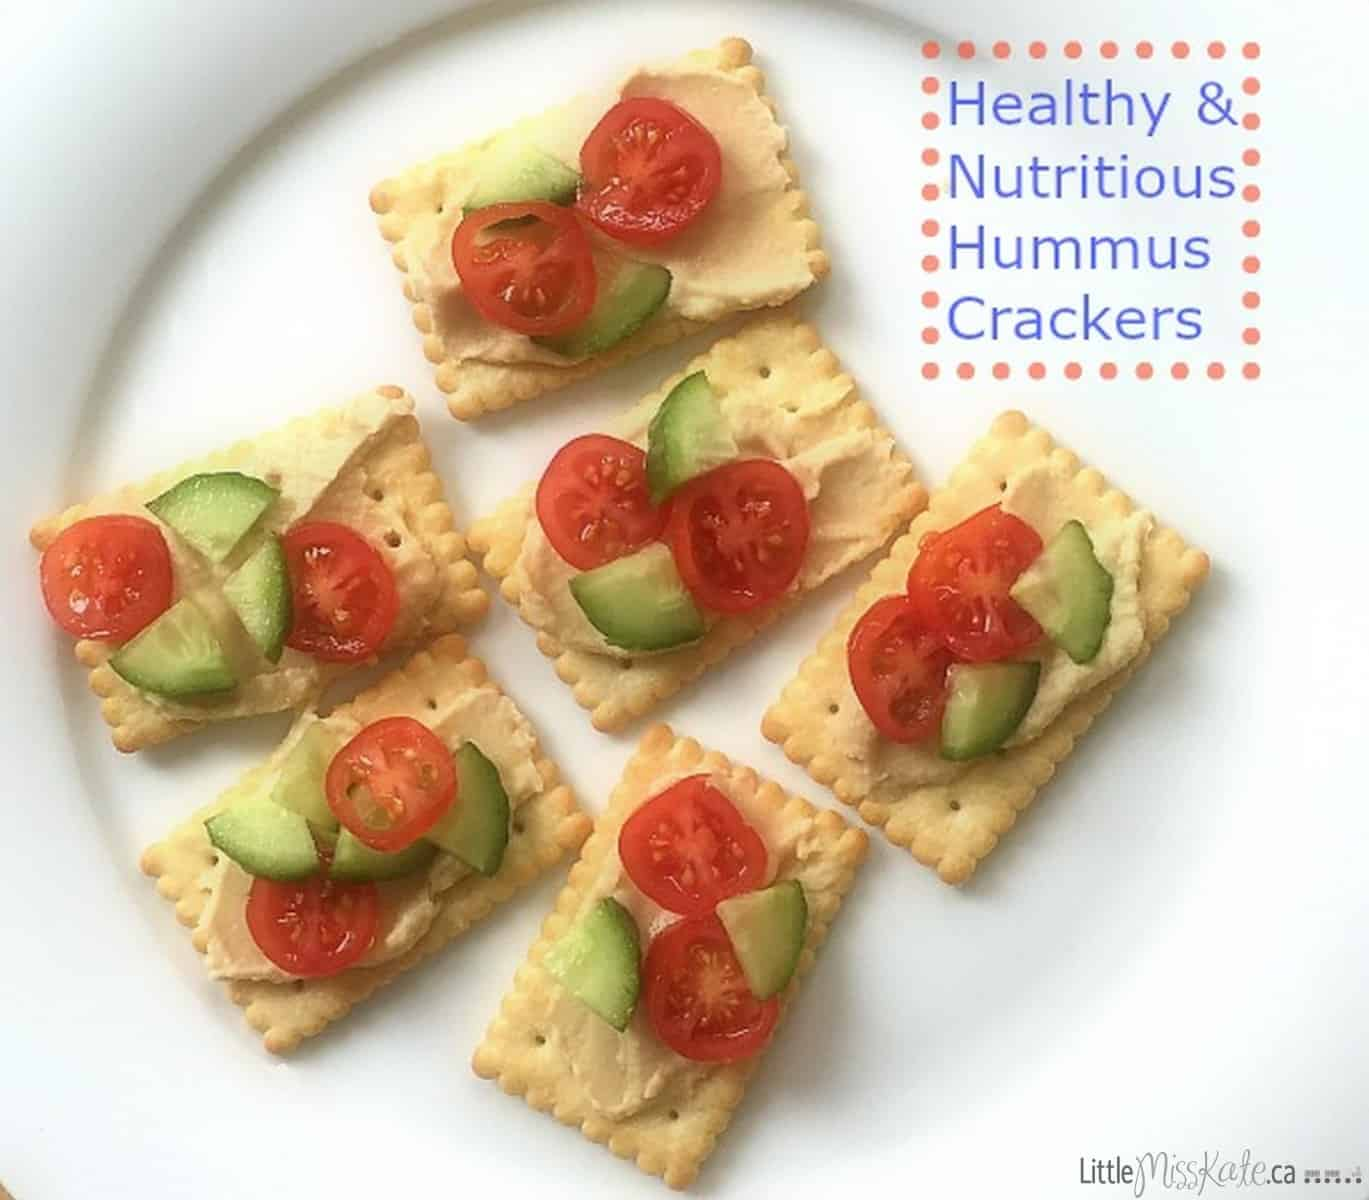 Hummus Crackers recommendations